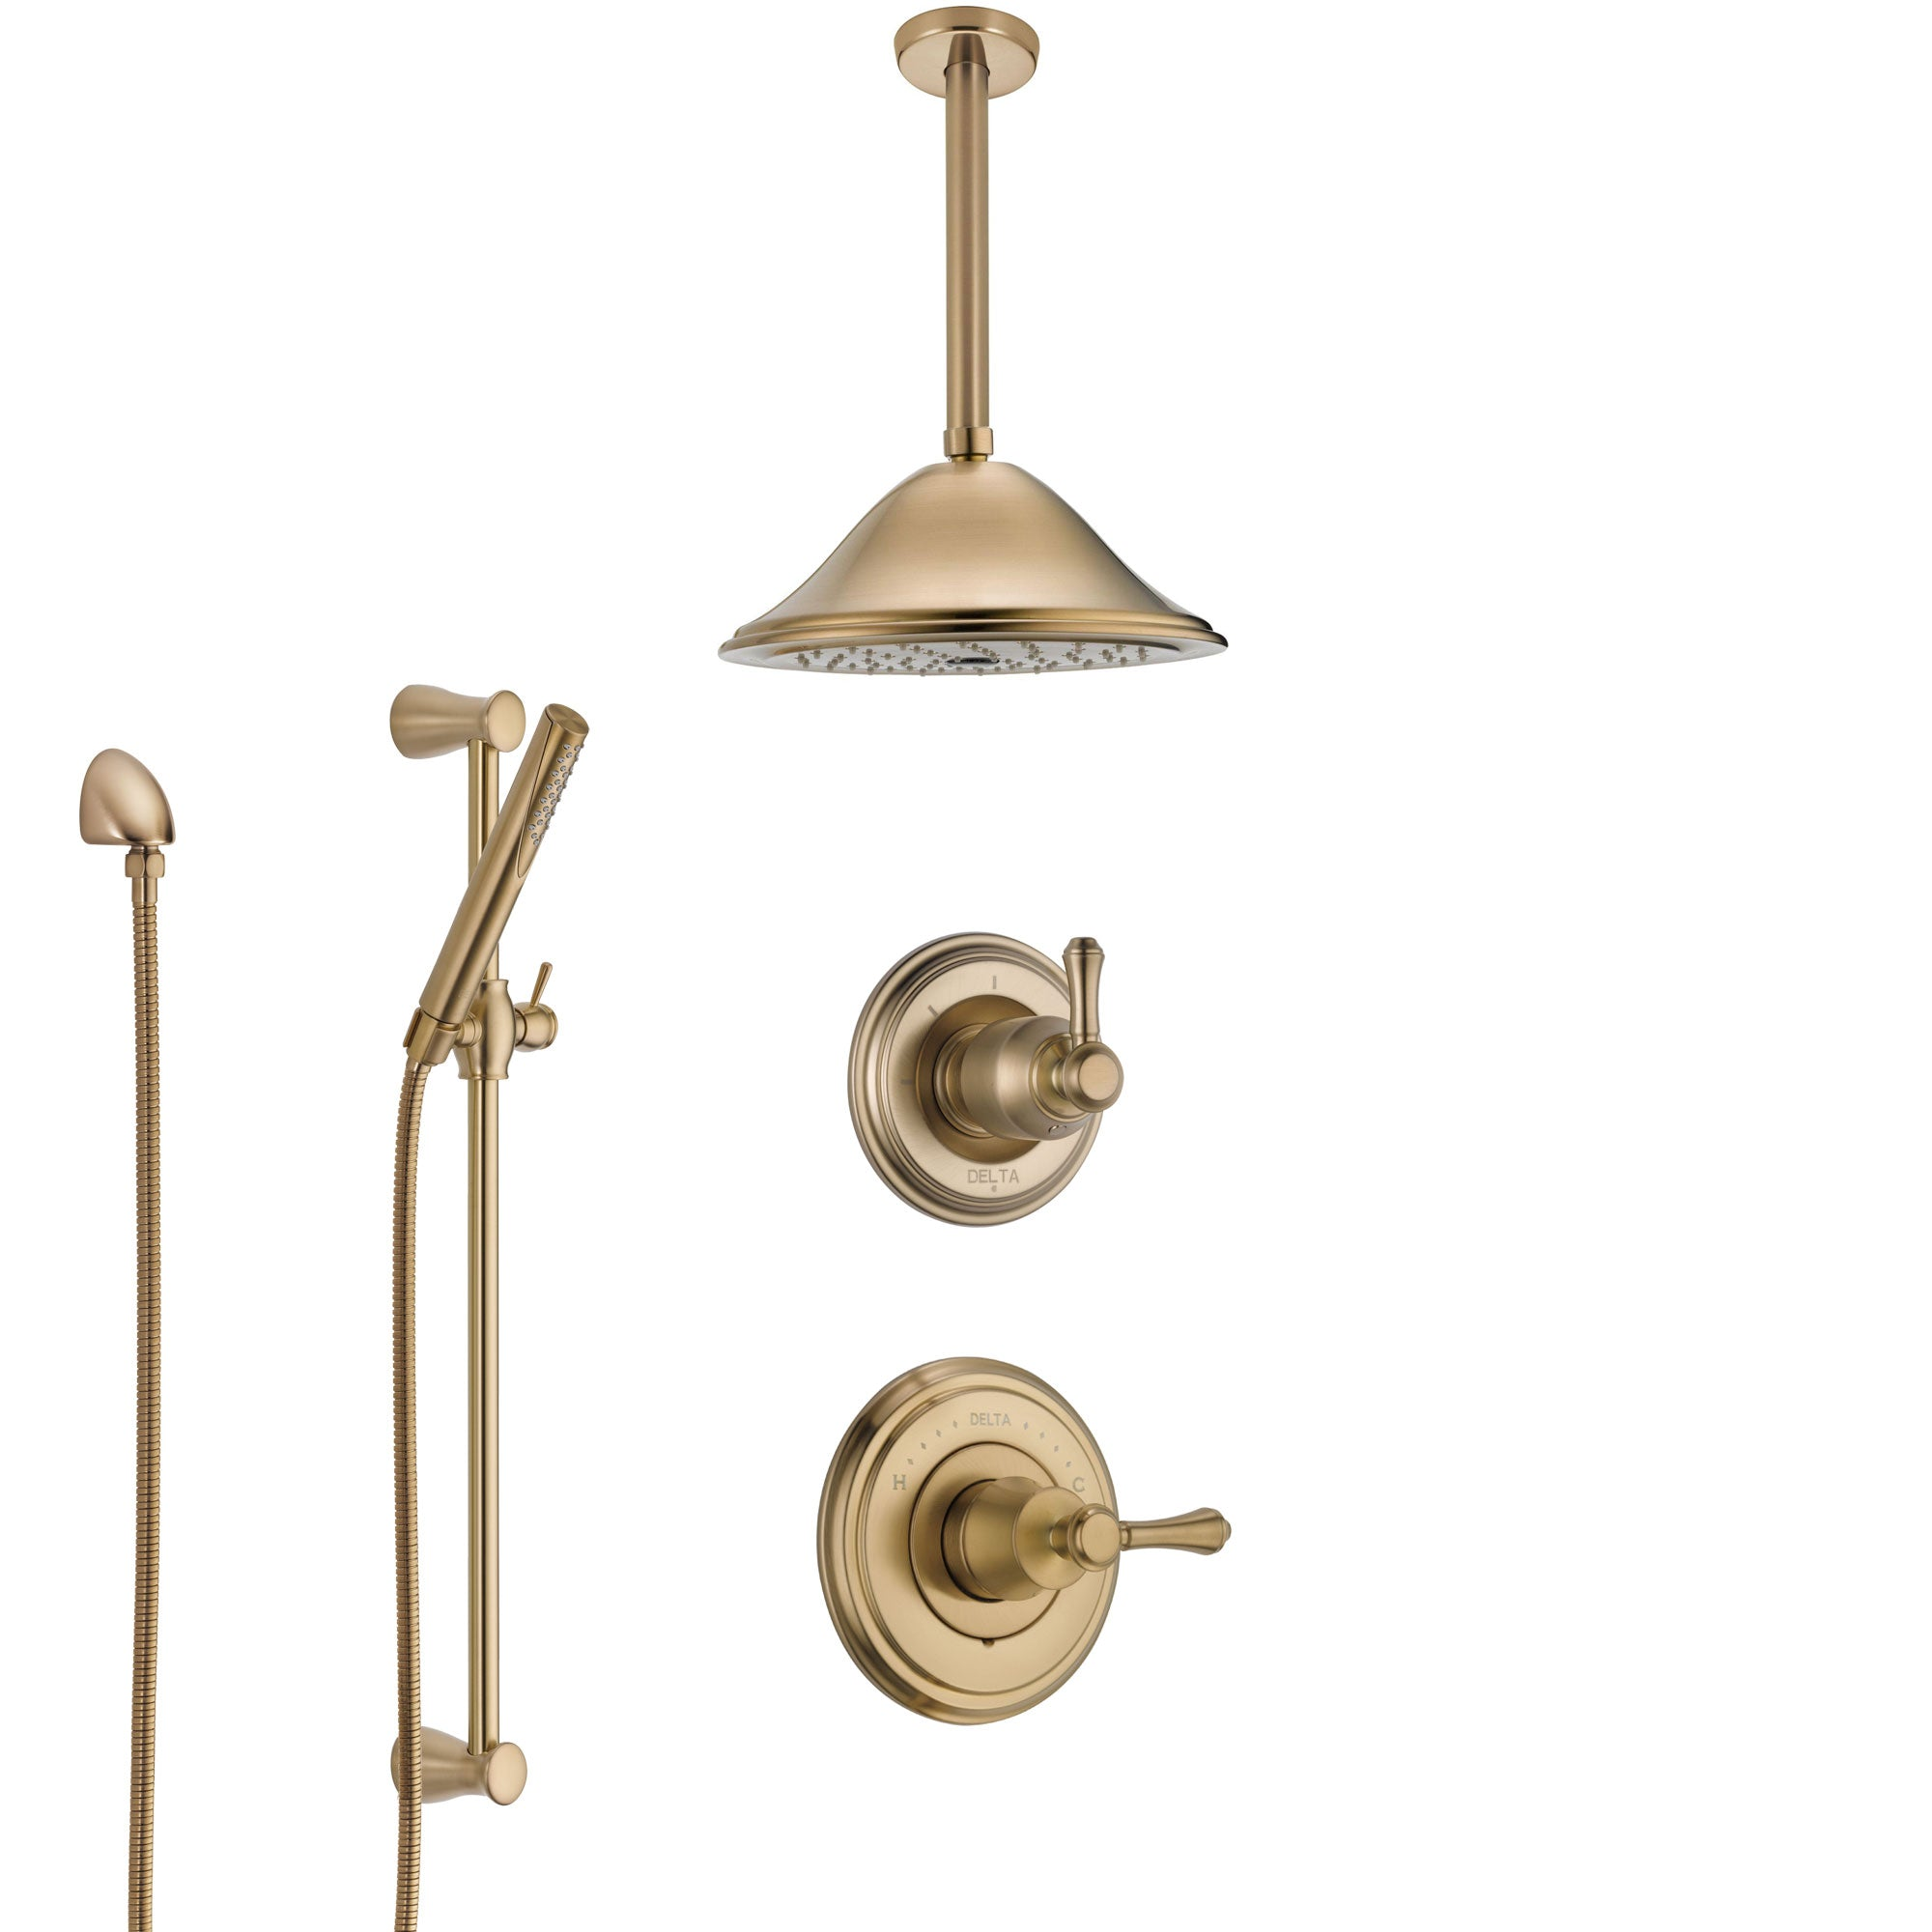 Delta Cassidy Champagne Bronze Shower System with Control Handle, Diverter, Ceiling Mount Showerhead, and Hand Shower with Slidebar SS14972CZ2